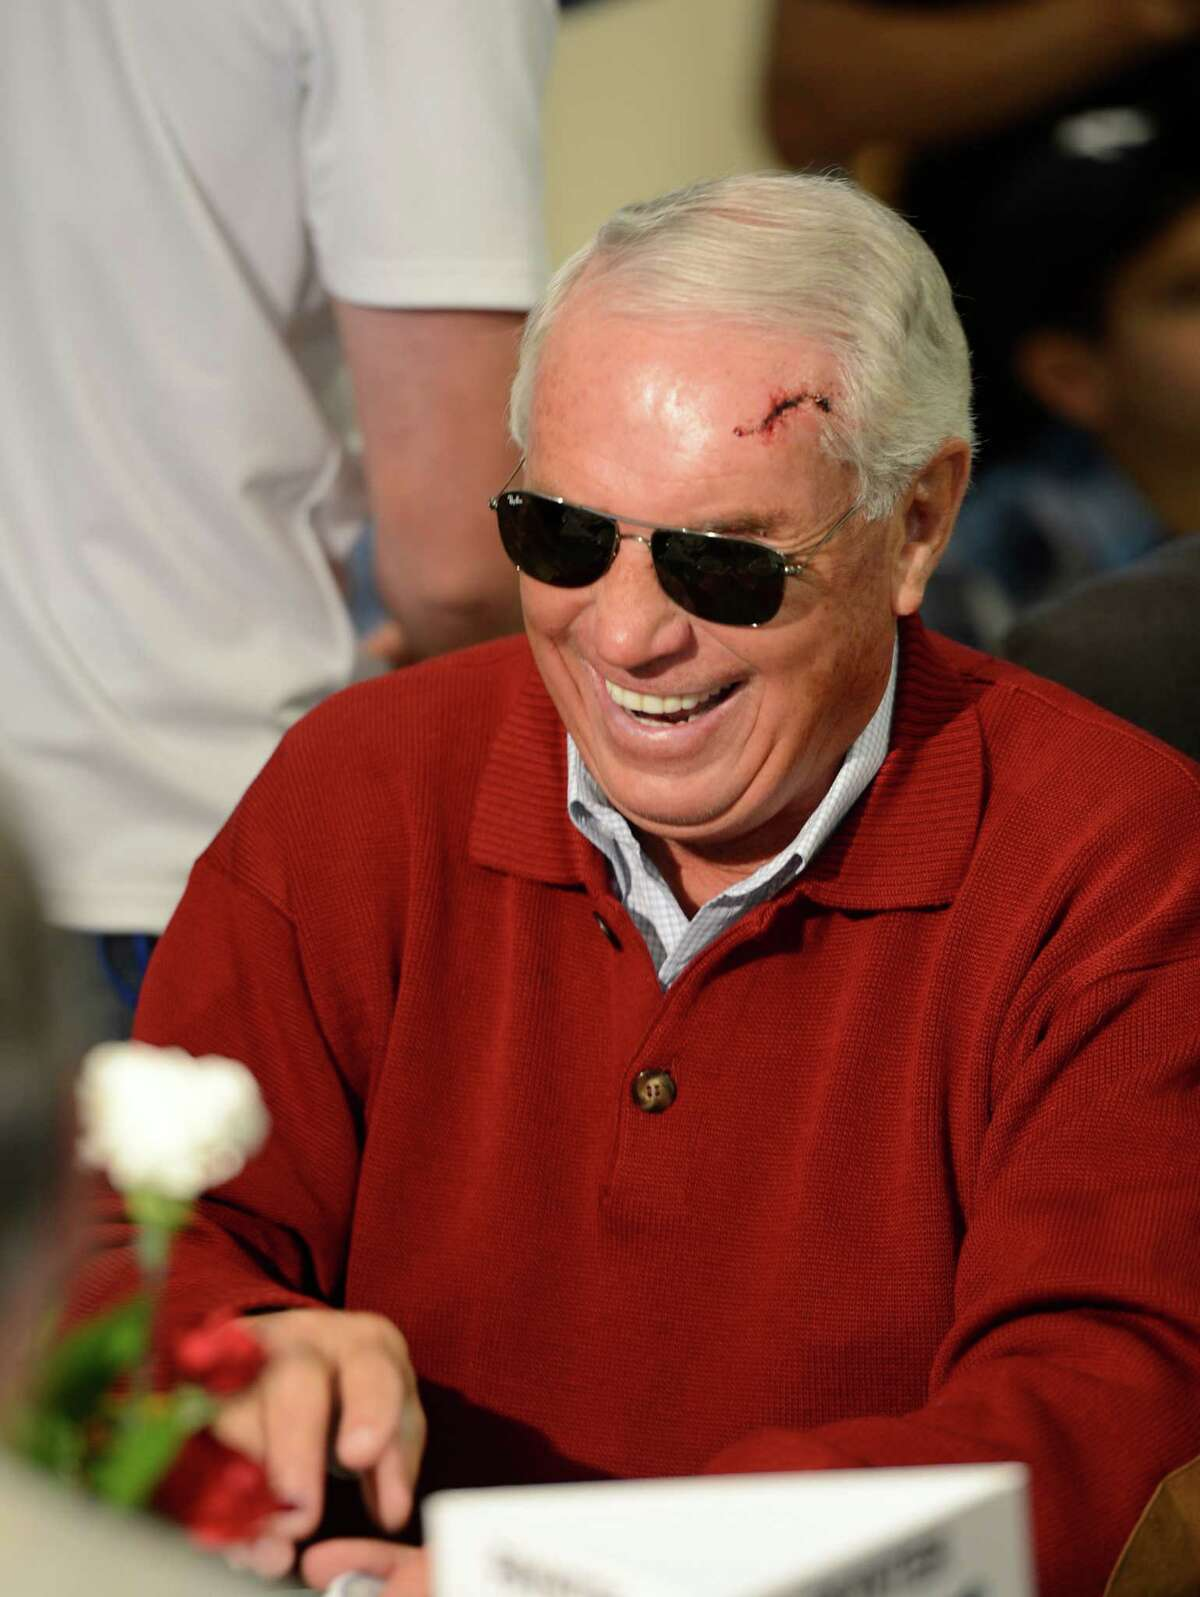 D. Wayne Lukas shows the scar of being kicked in the head by one of his charges at the Post Position Draw for the 2012 Belmont Stakes at Belmont Park in Elmont, N.Y. June 6, 2012. (Skip Dickstein / Times Union)